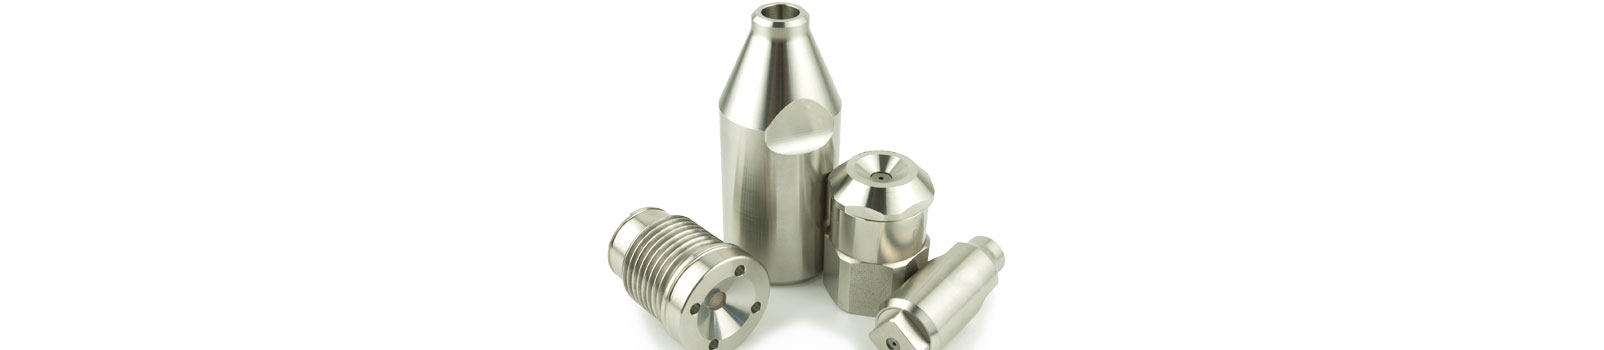 bodies-and-adapters-spray-drying-nozzles